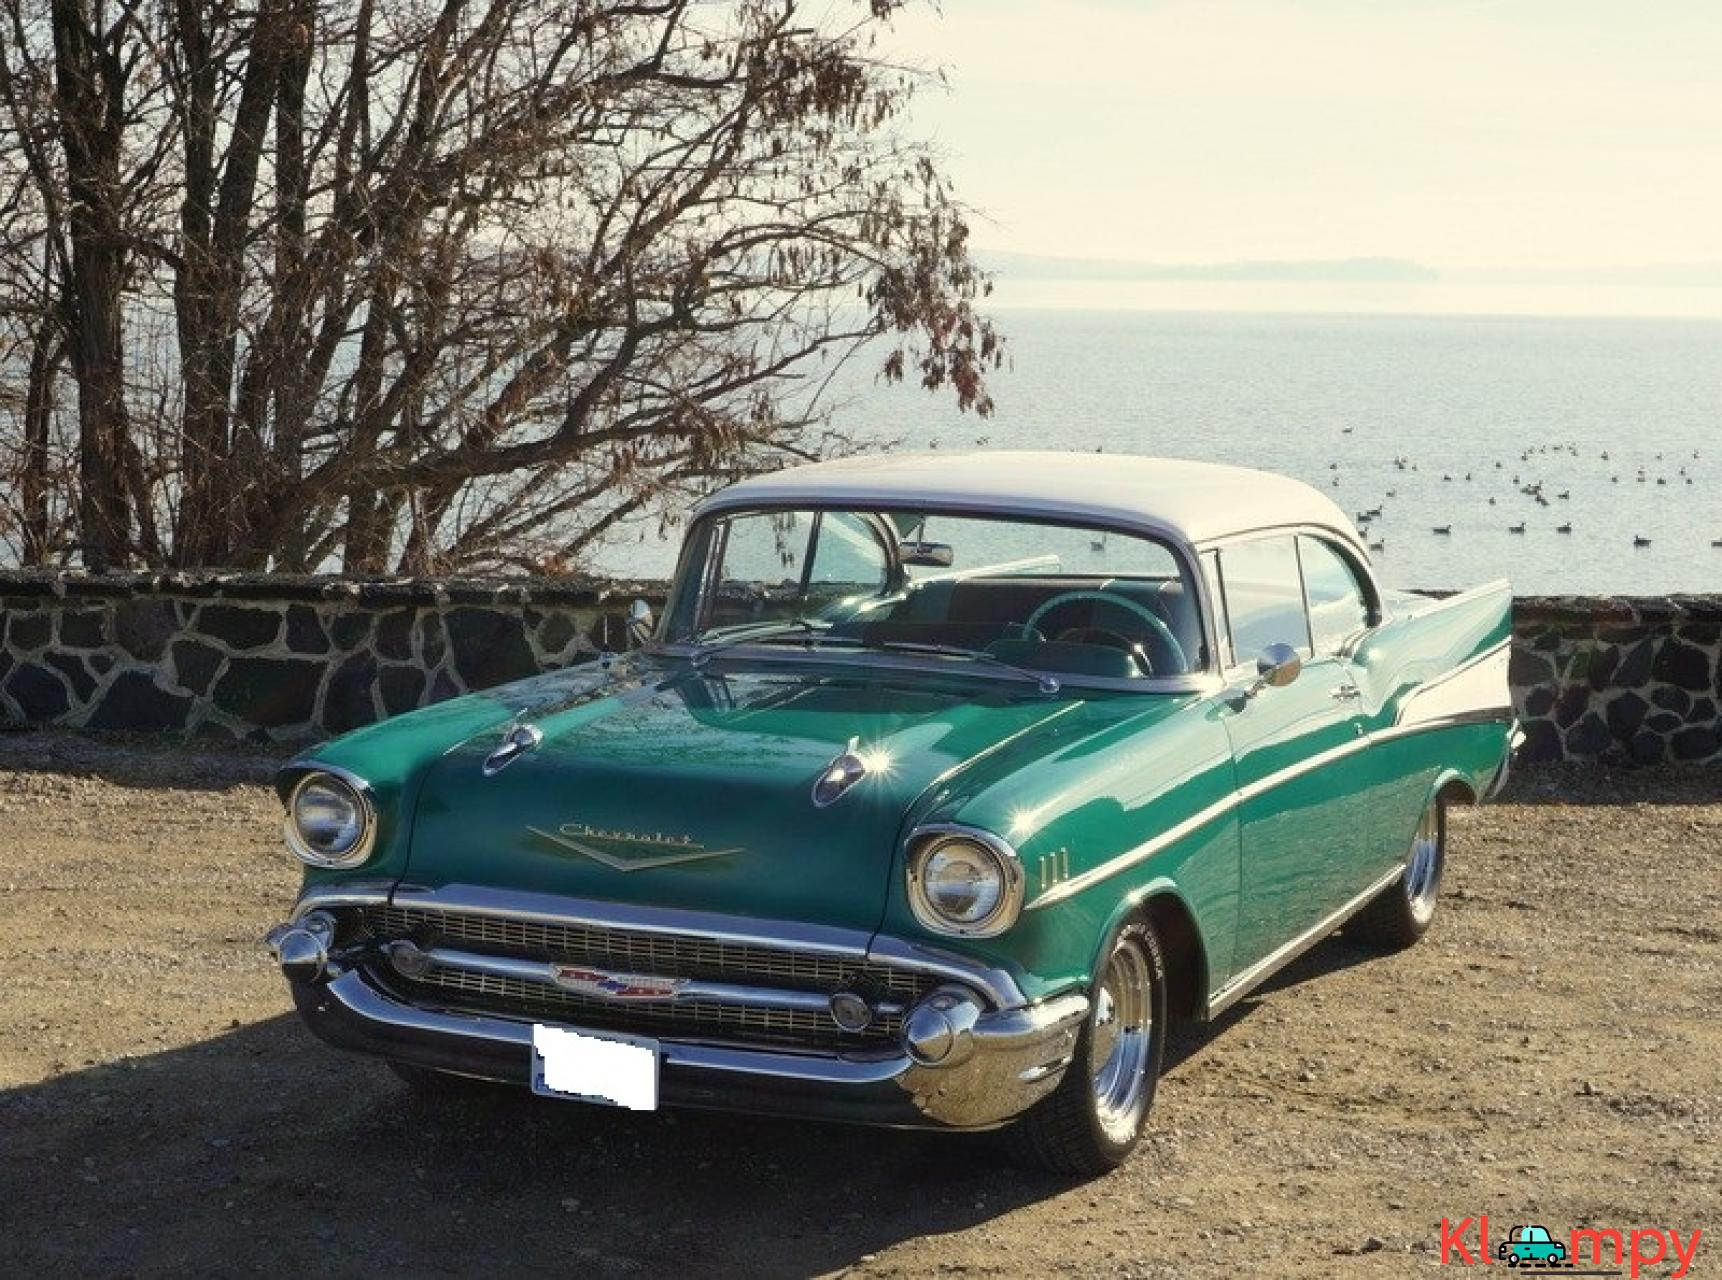 1957 Chevrolet Bel Air 150 210 Hardtop - 6/20